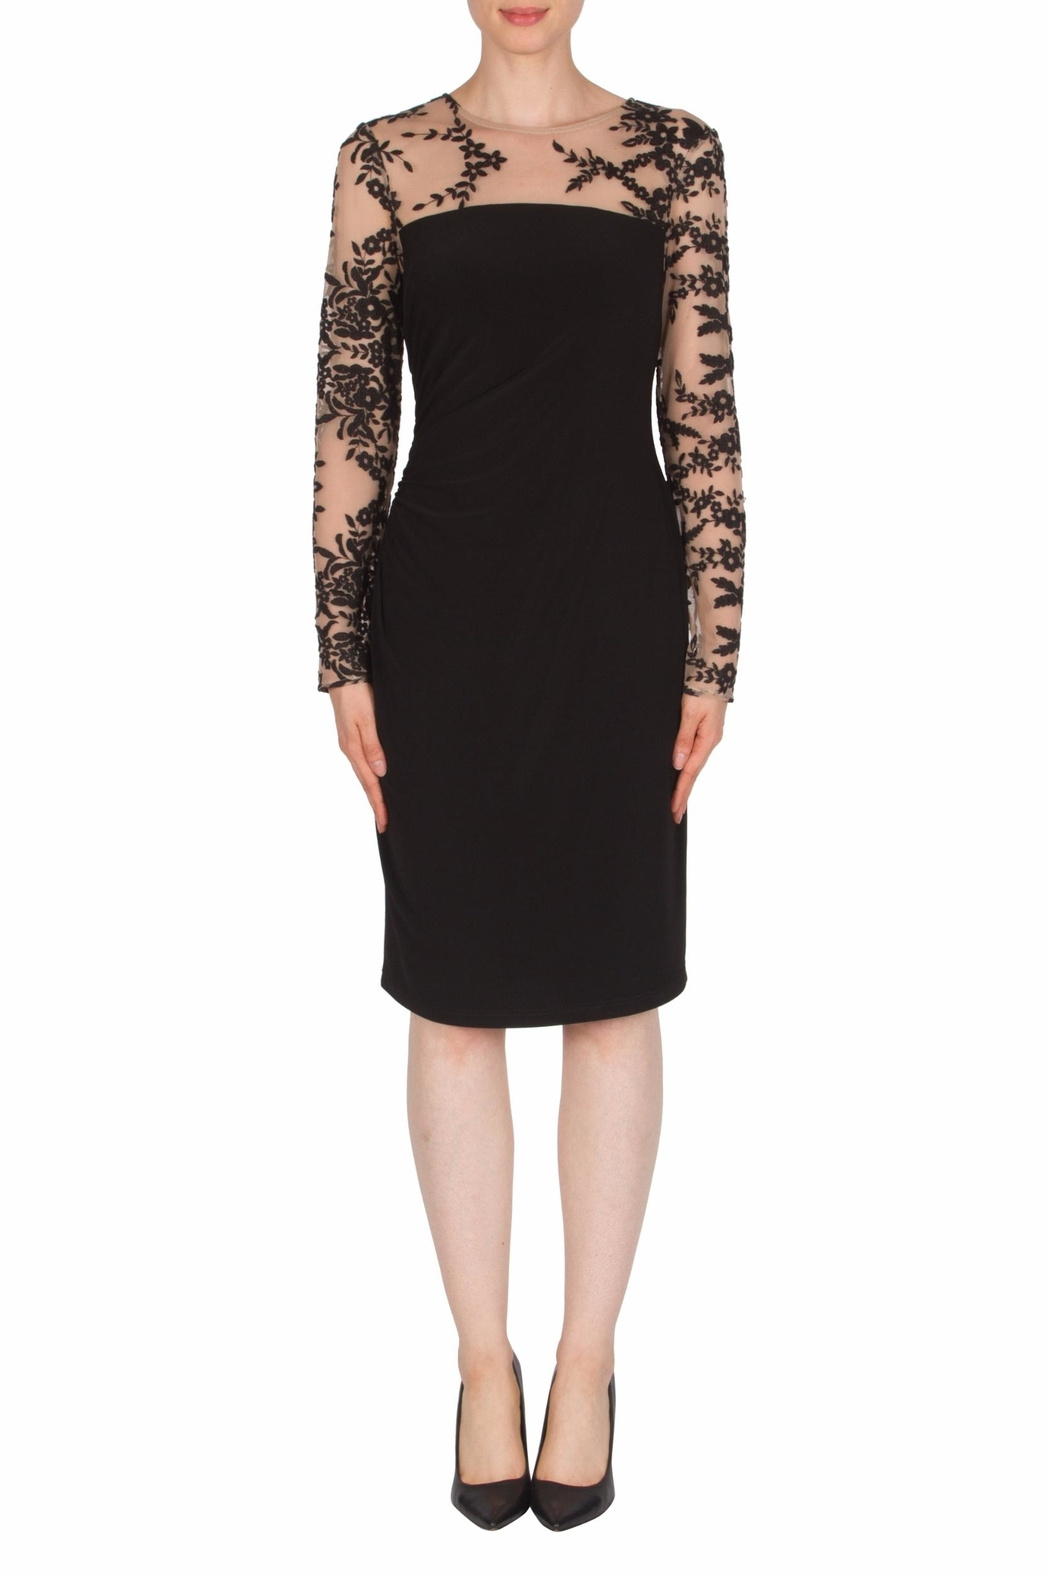 Joseph Ribkoff USA Inc. Lace Top Mock Neck Dress - Main Image